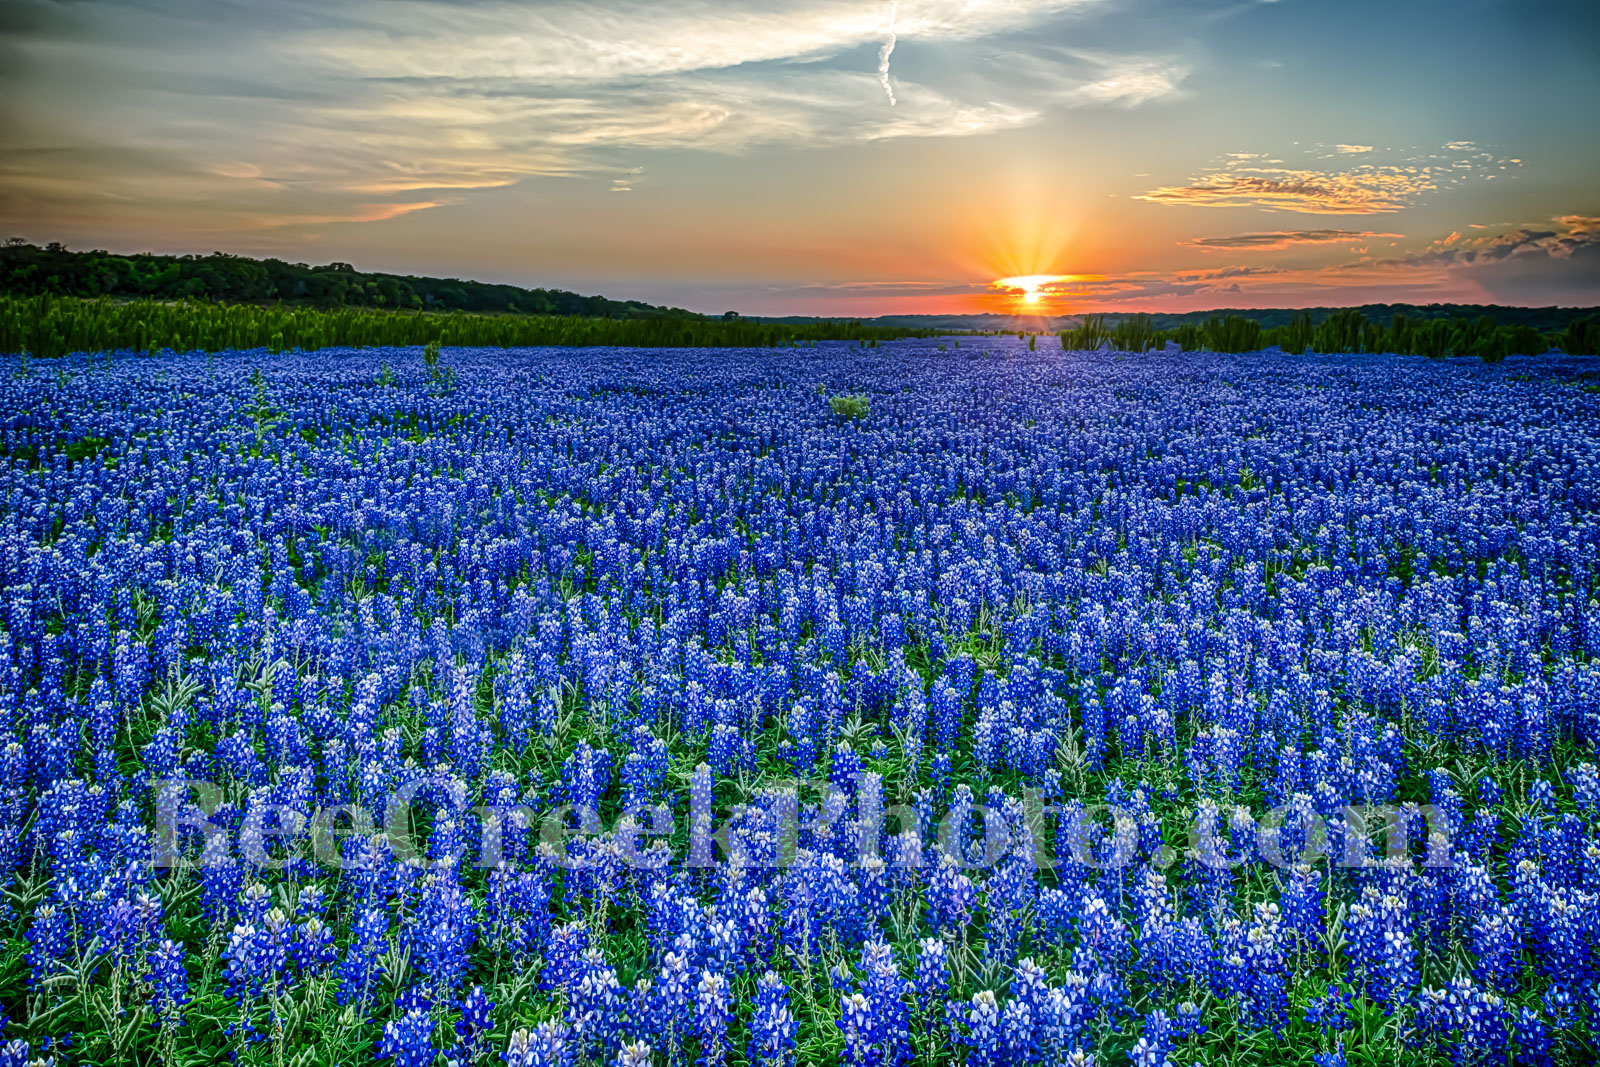 Bluebonnets, Texas Hill country bluebonnets,  texas bluebonnets, field of bluebonnets, texas hill country, spring, Muleshoe Park, Colorado river, heavenly, glow, wildflower, wildflowers, sunset, sun s, photo